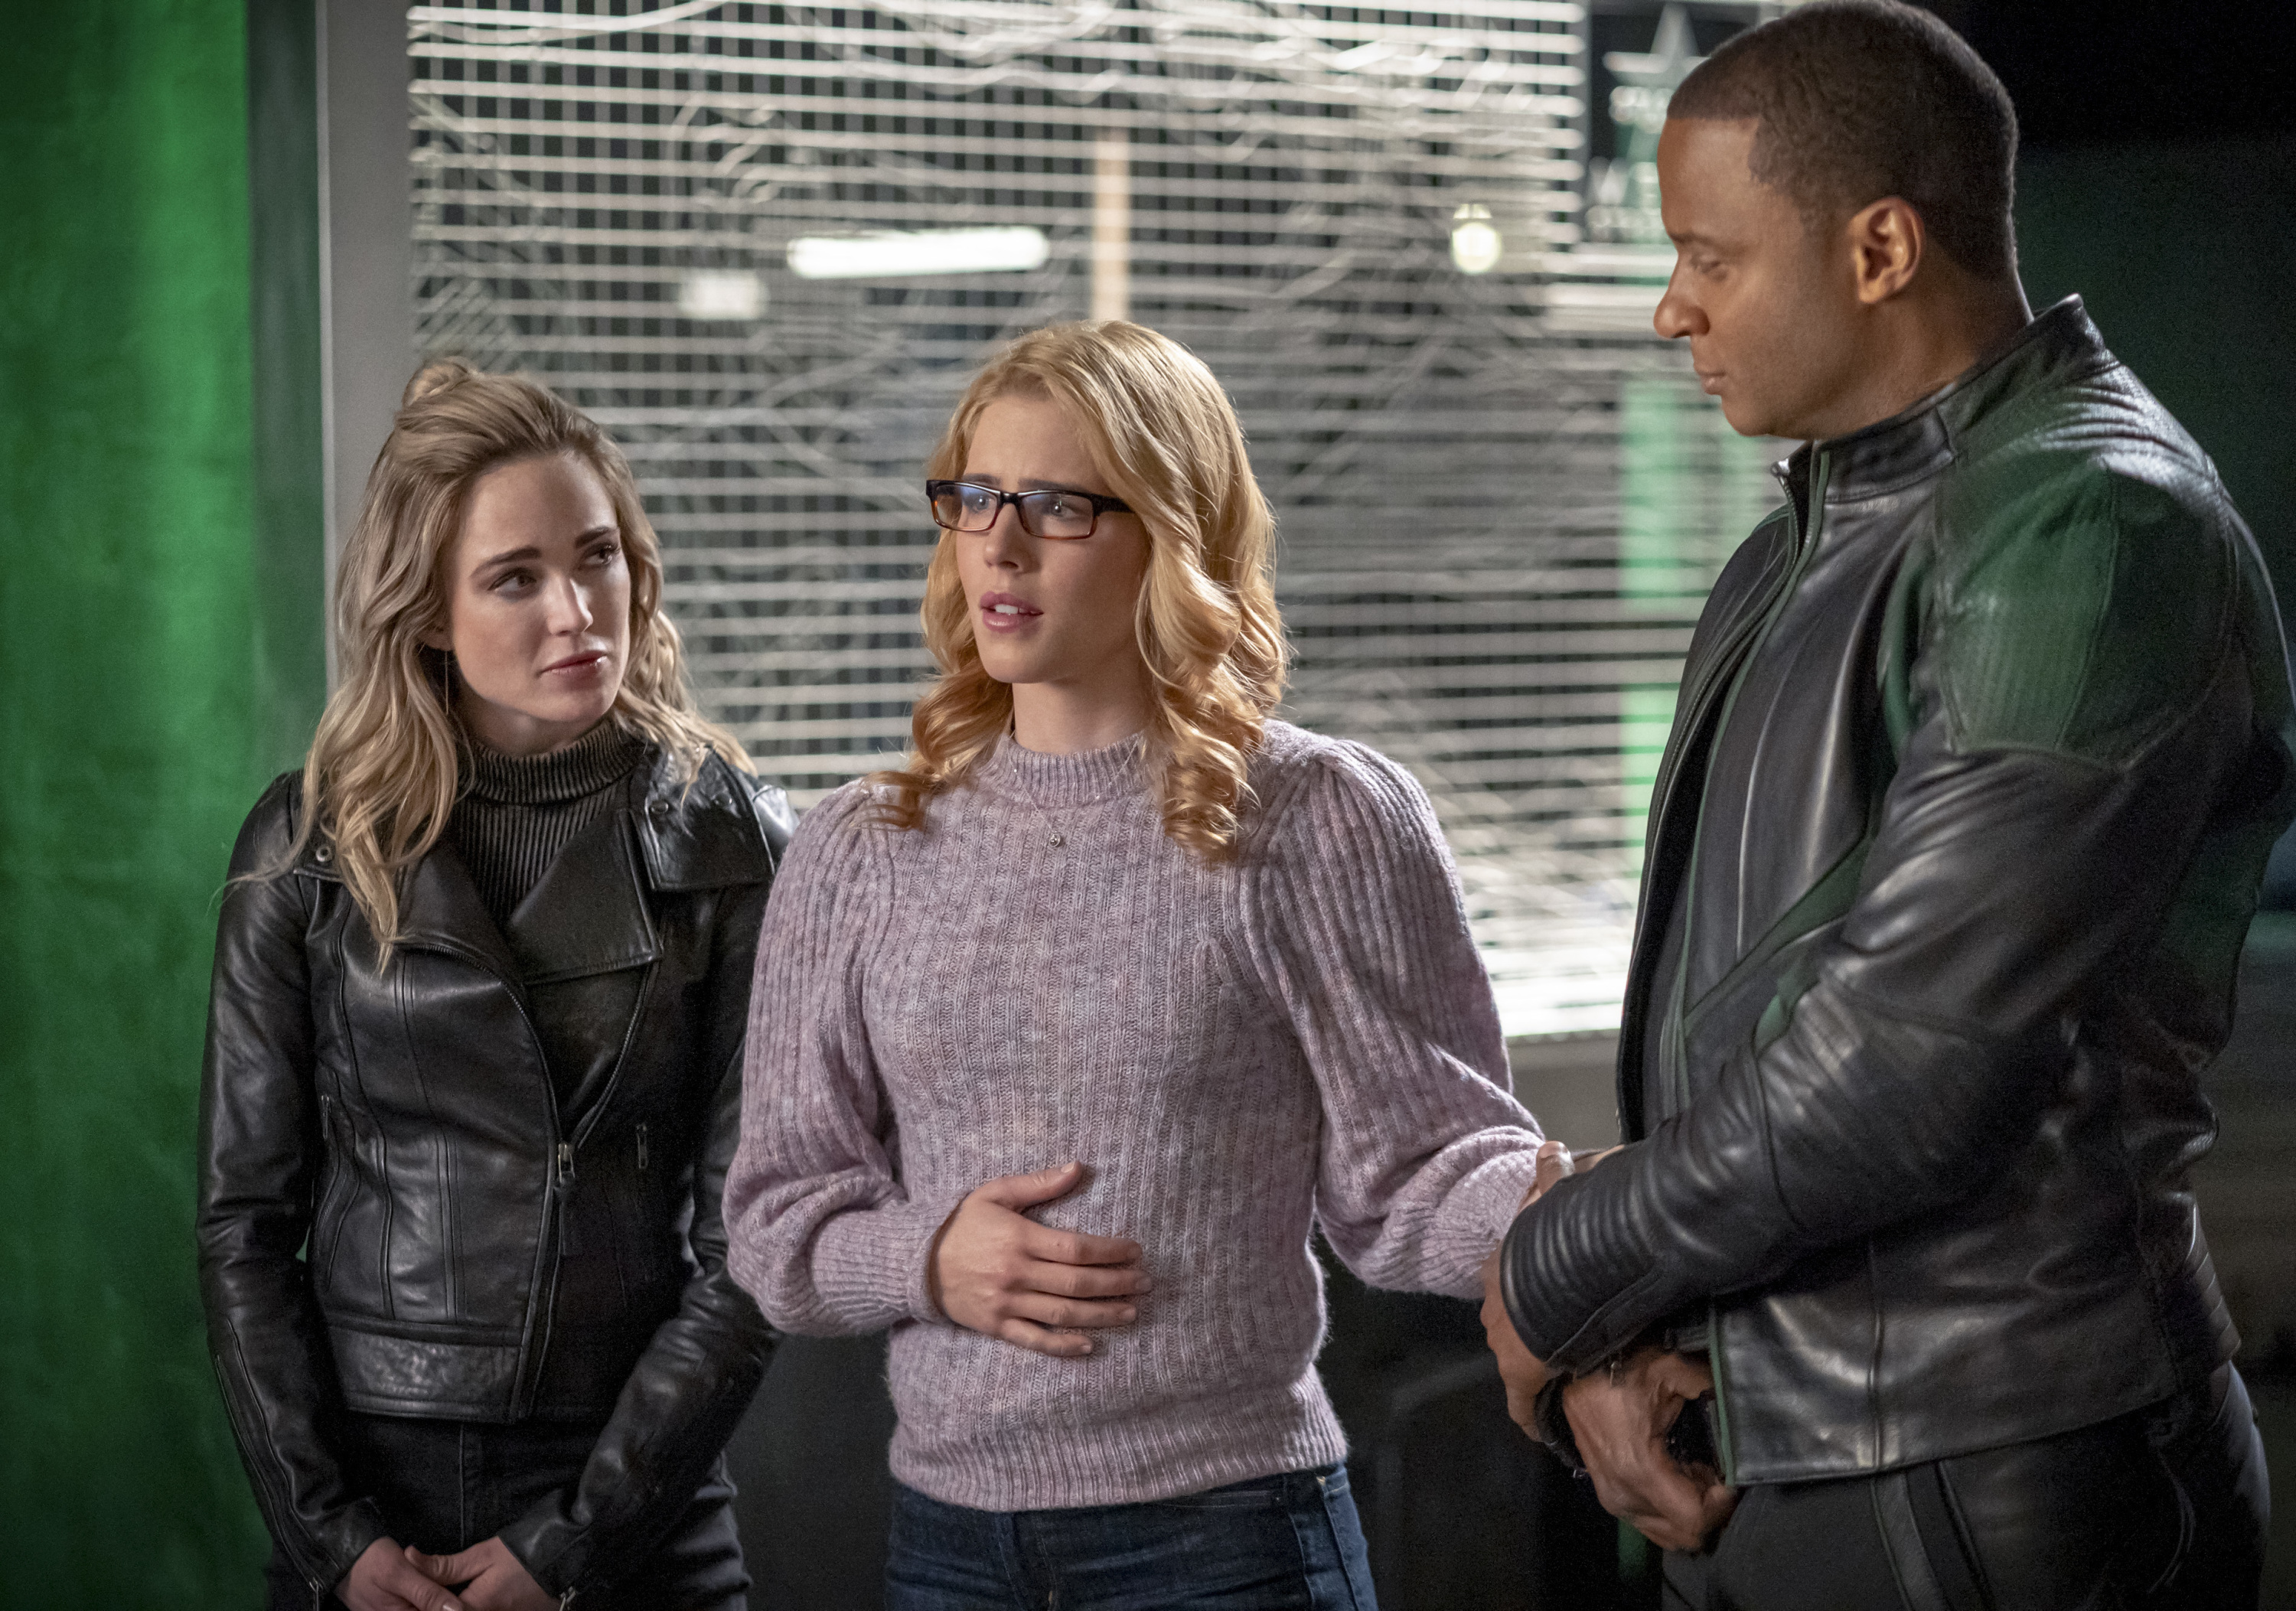 'Arrow' finale looks to the past, while planting seeds for the future